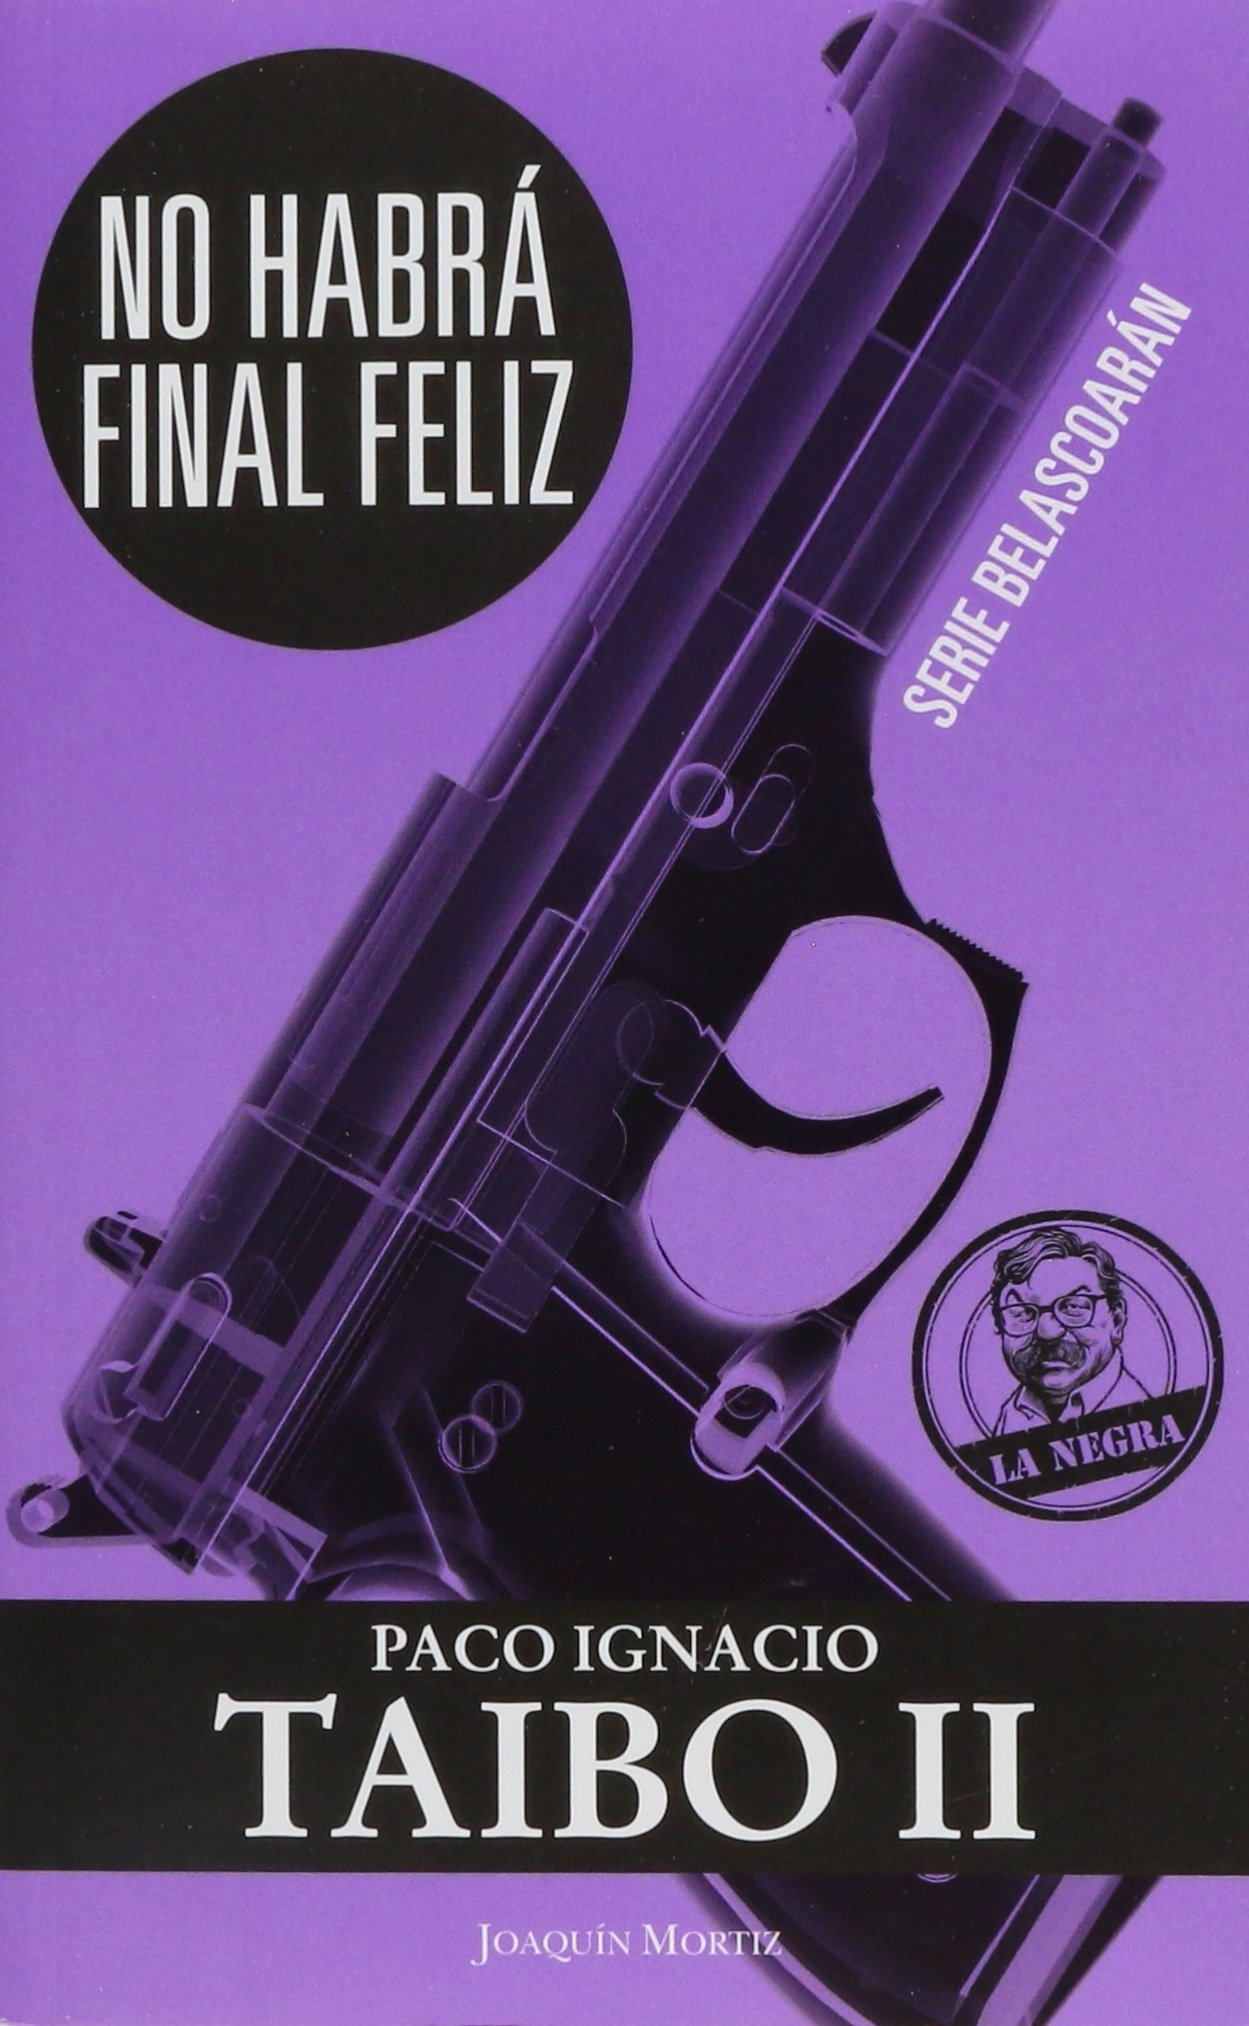 No Habra Final Feliz (Spanish Edition): Paco Ignacio Taibo Ii: 9786070716683: Amazon.com: Books